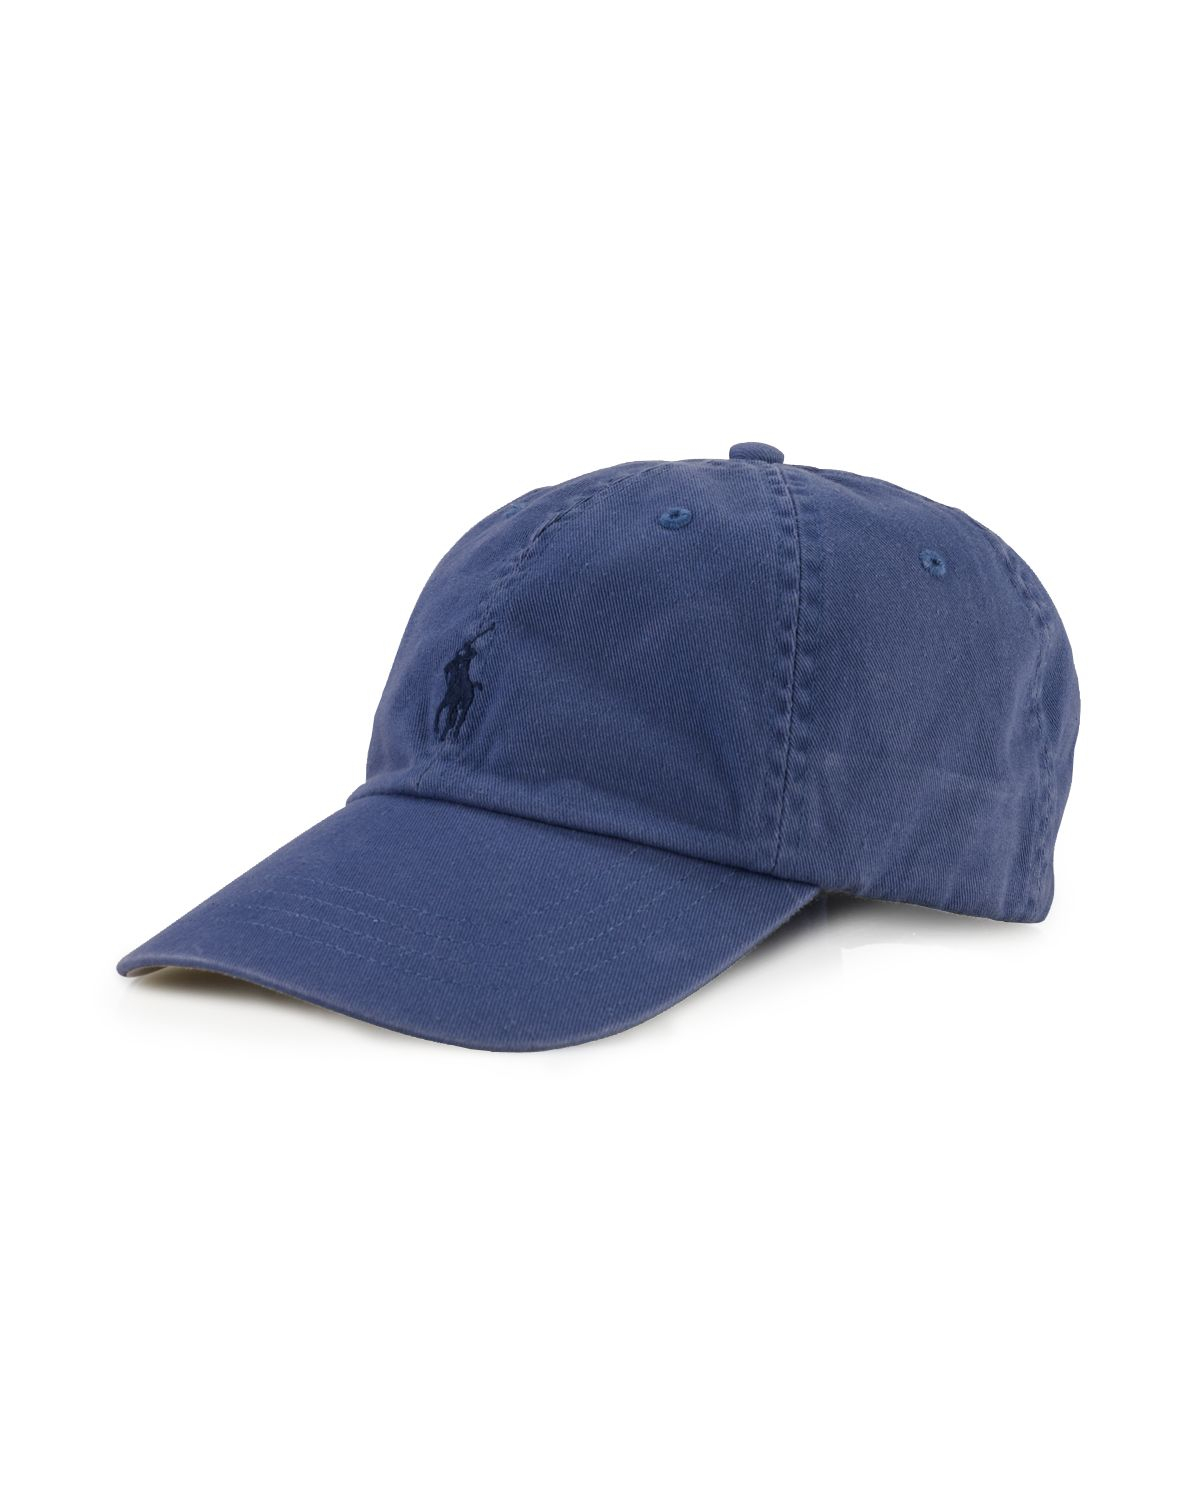 polo ralph lauren signature pony hat in blue for men lyst. Black Bedroom Furniture Sets. Home Design Ideas